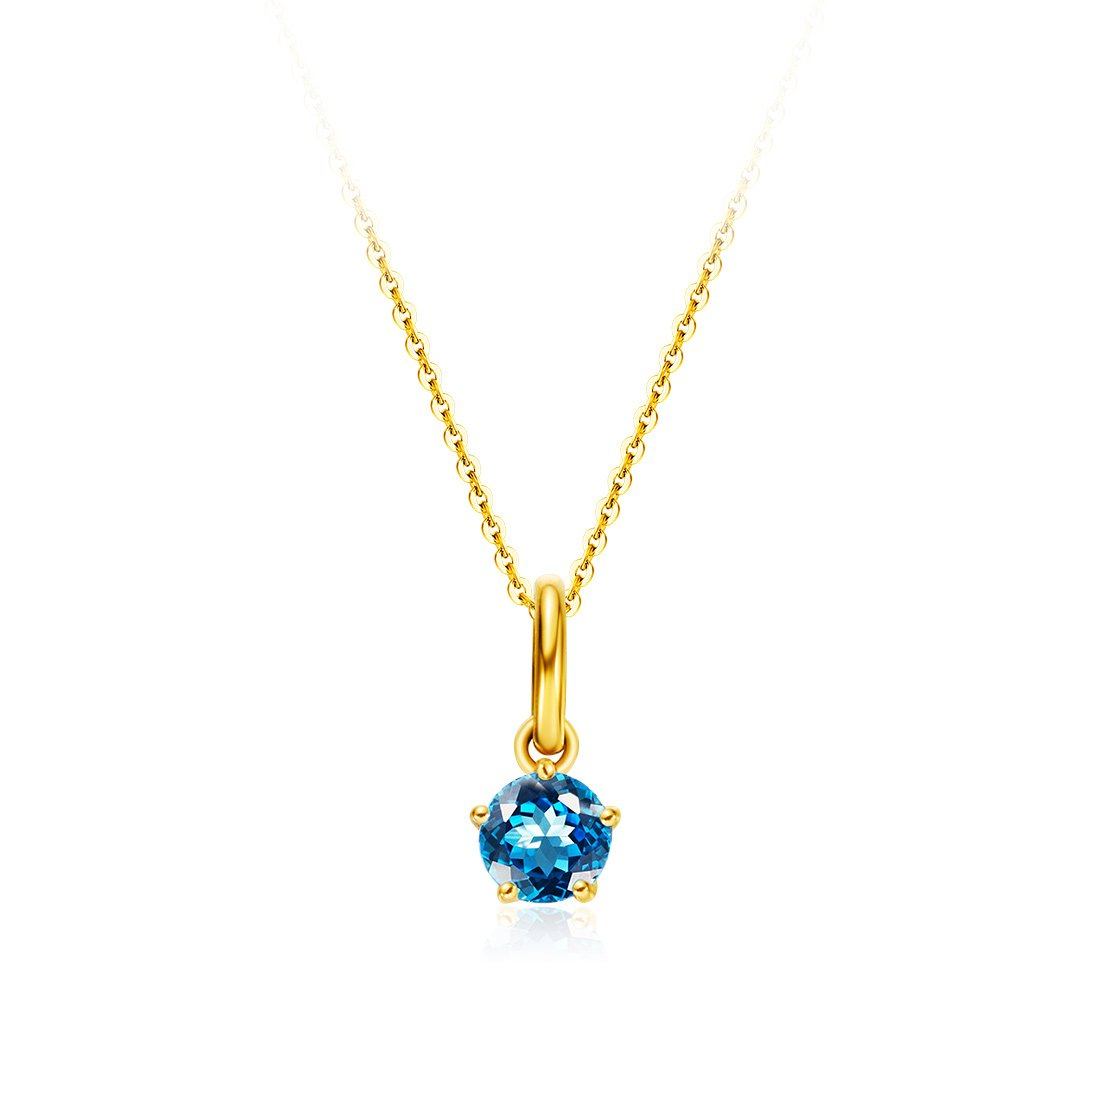 Carleen Solid 18K Yellow Gold Solitaire Genuine Gemstone Delicate Dainty Birthstone Necklace Pendant Fine Jewelry Birthday Gifts for Women Girls 18 inch